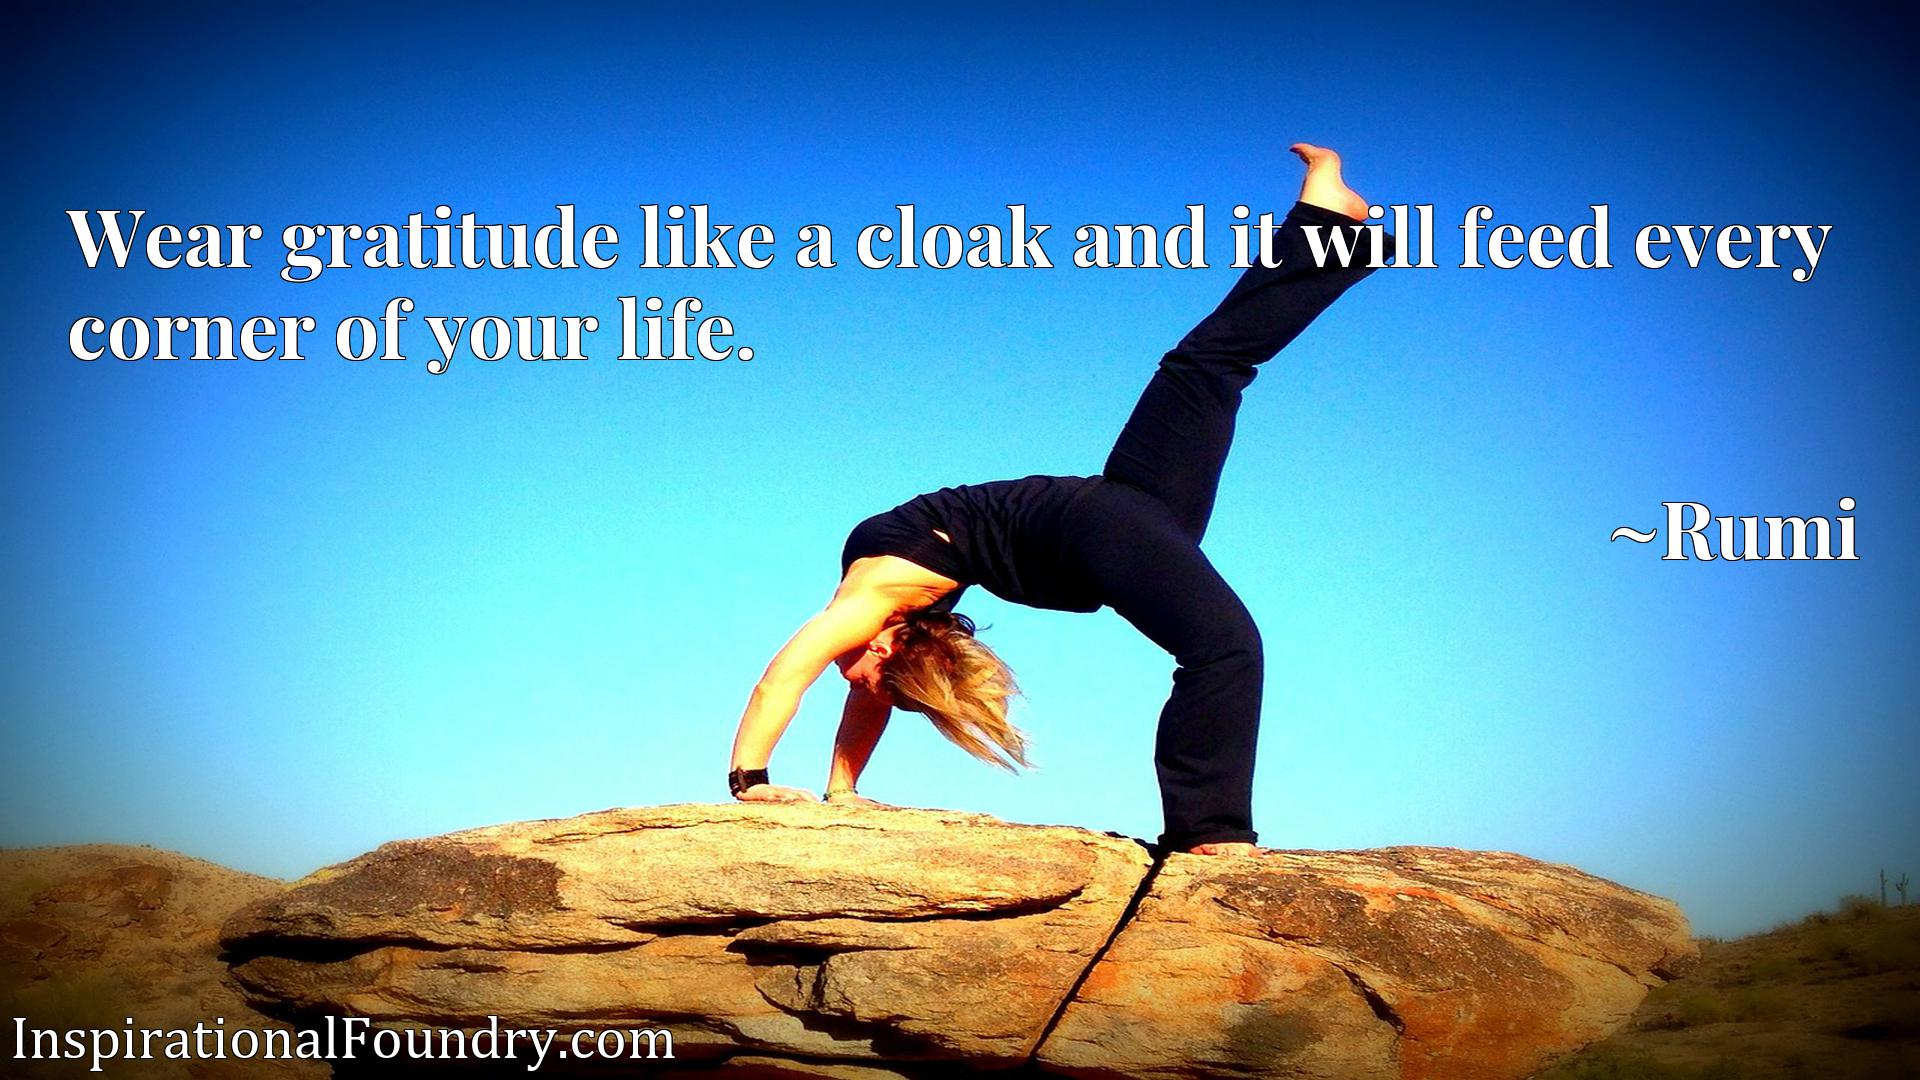 Wear gratitude like a cloak and it will feed every corner of your life.